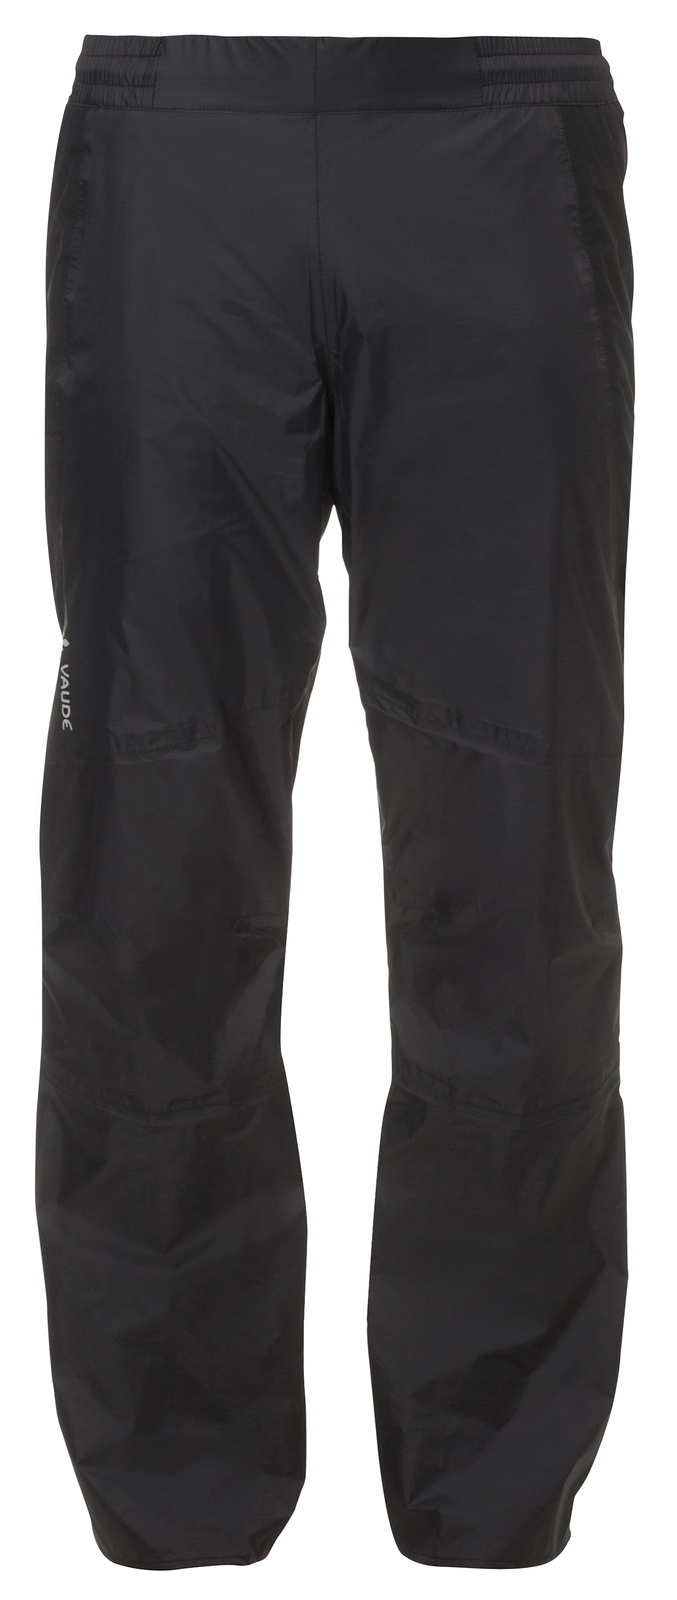 VAUDE Men´s Spray Pants III black Größe L-Long - schneider-sports